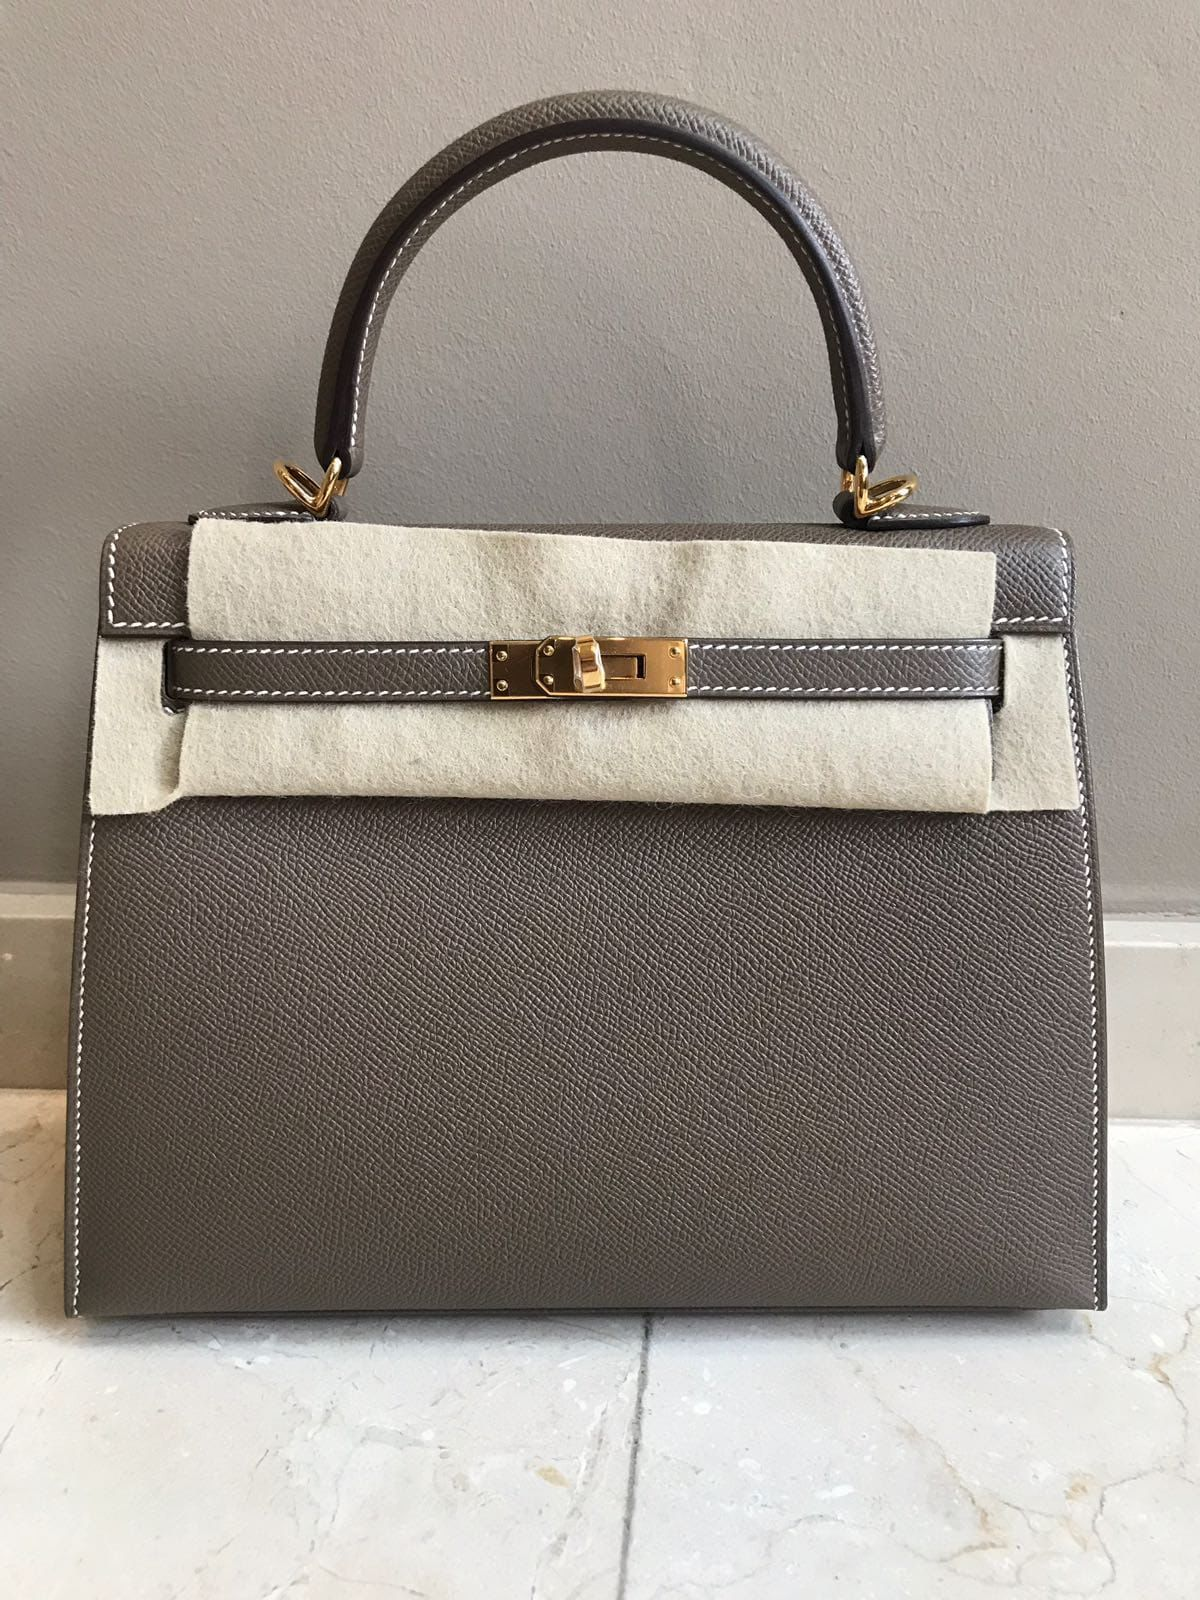 2a858dfefb96 Hermès Kelly 25 Etoupe Sellier Epsom Gold Hardware GHW C Stamp 2018  kelly25   thefrenchhunter